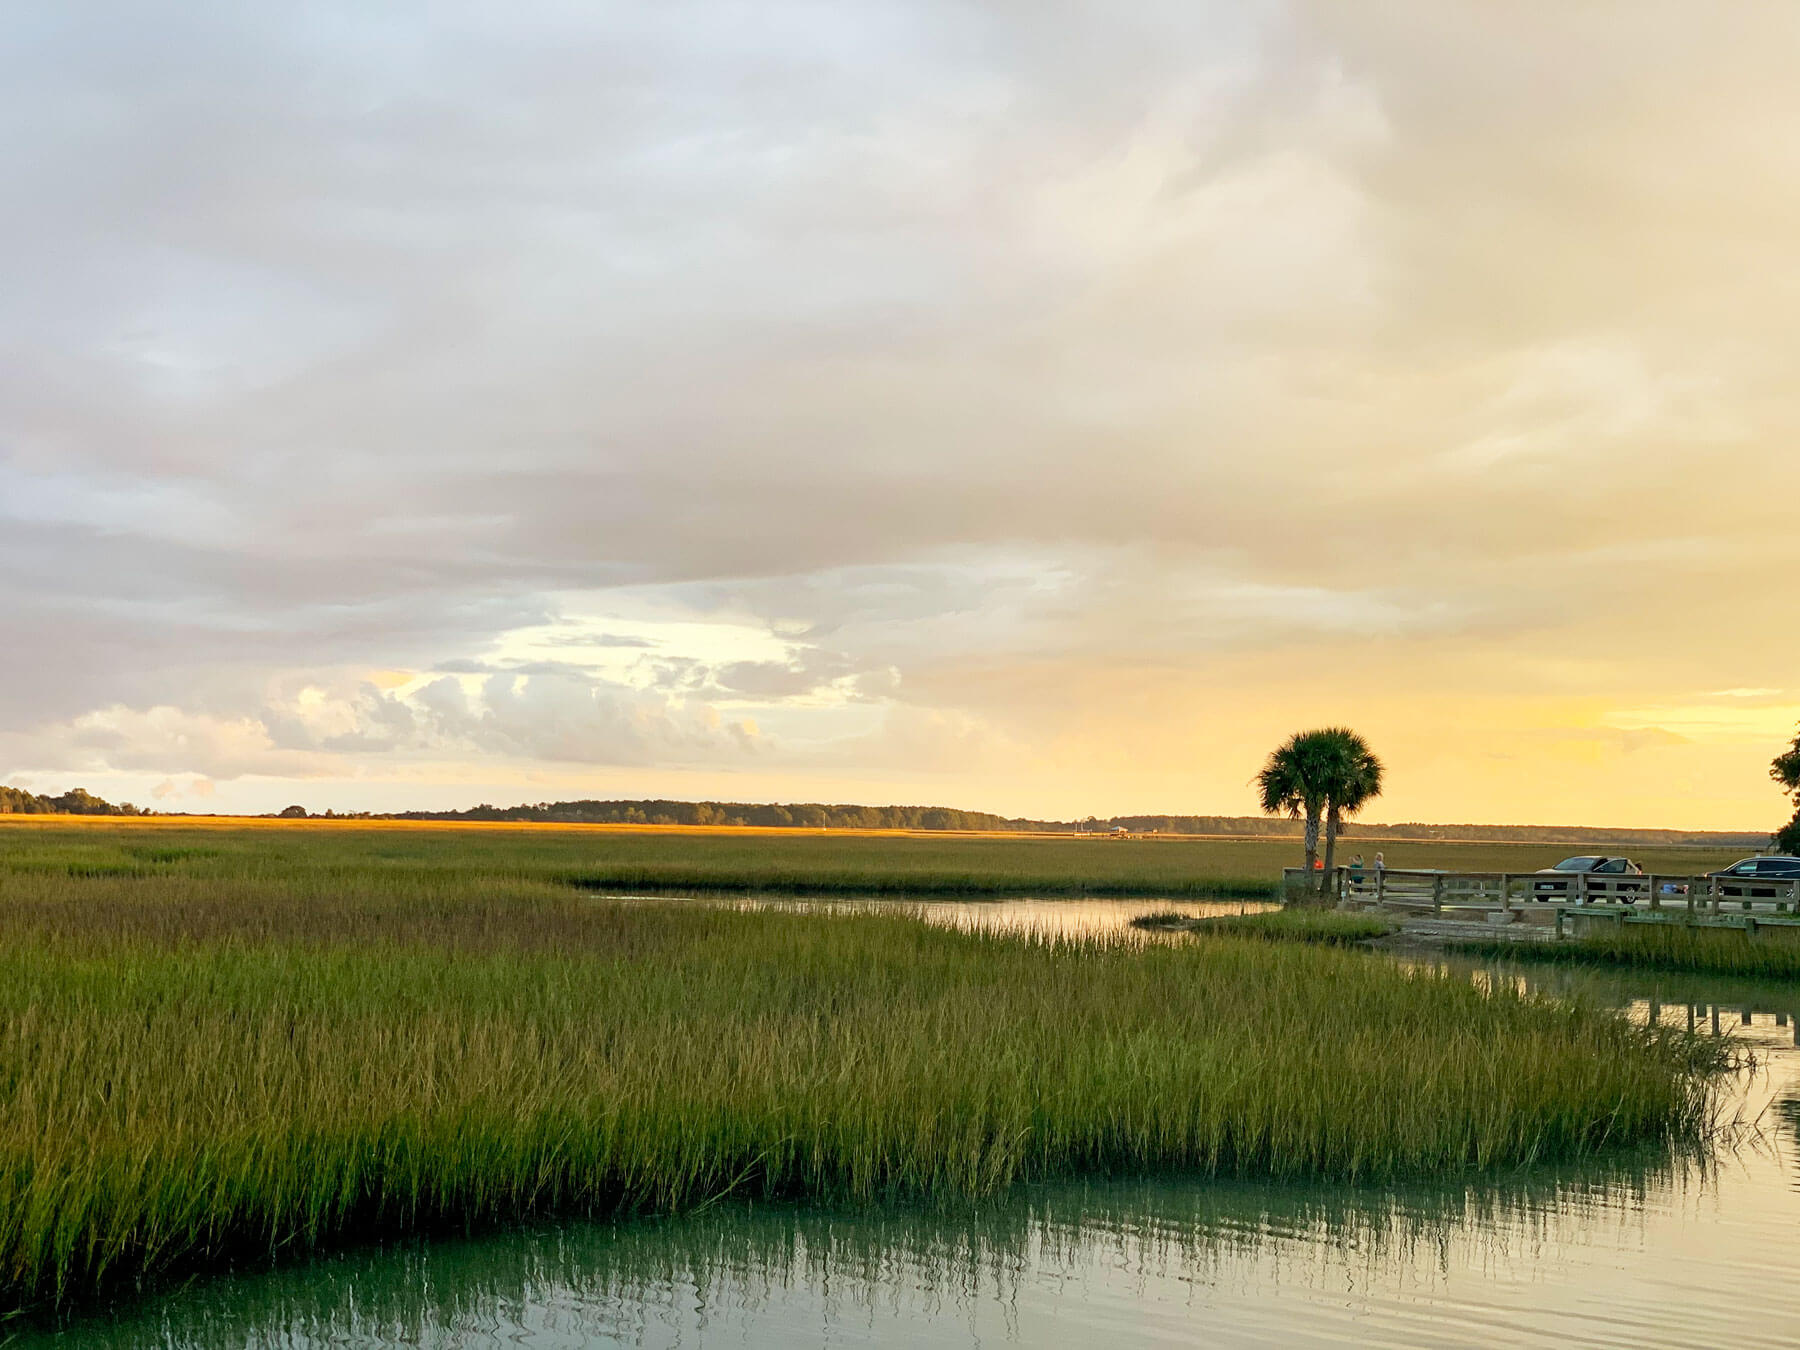 All About the Murrells Inlet and Myrtle Beach Ecosystem